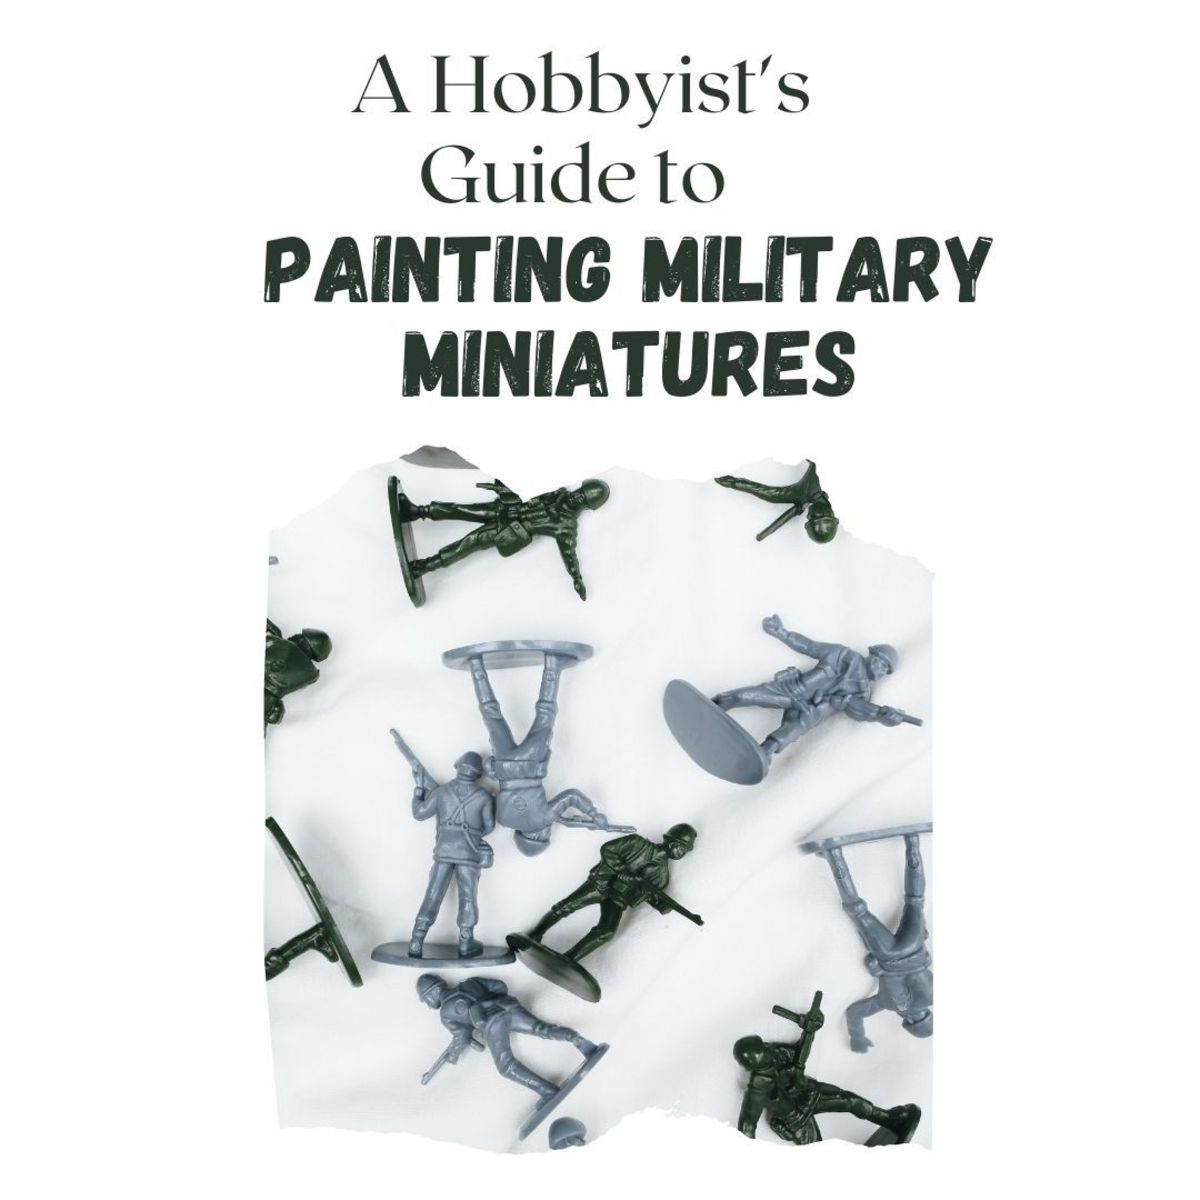 Learn all the essential tips, tricks, and tools you'll need to know to paint military miniatures!